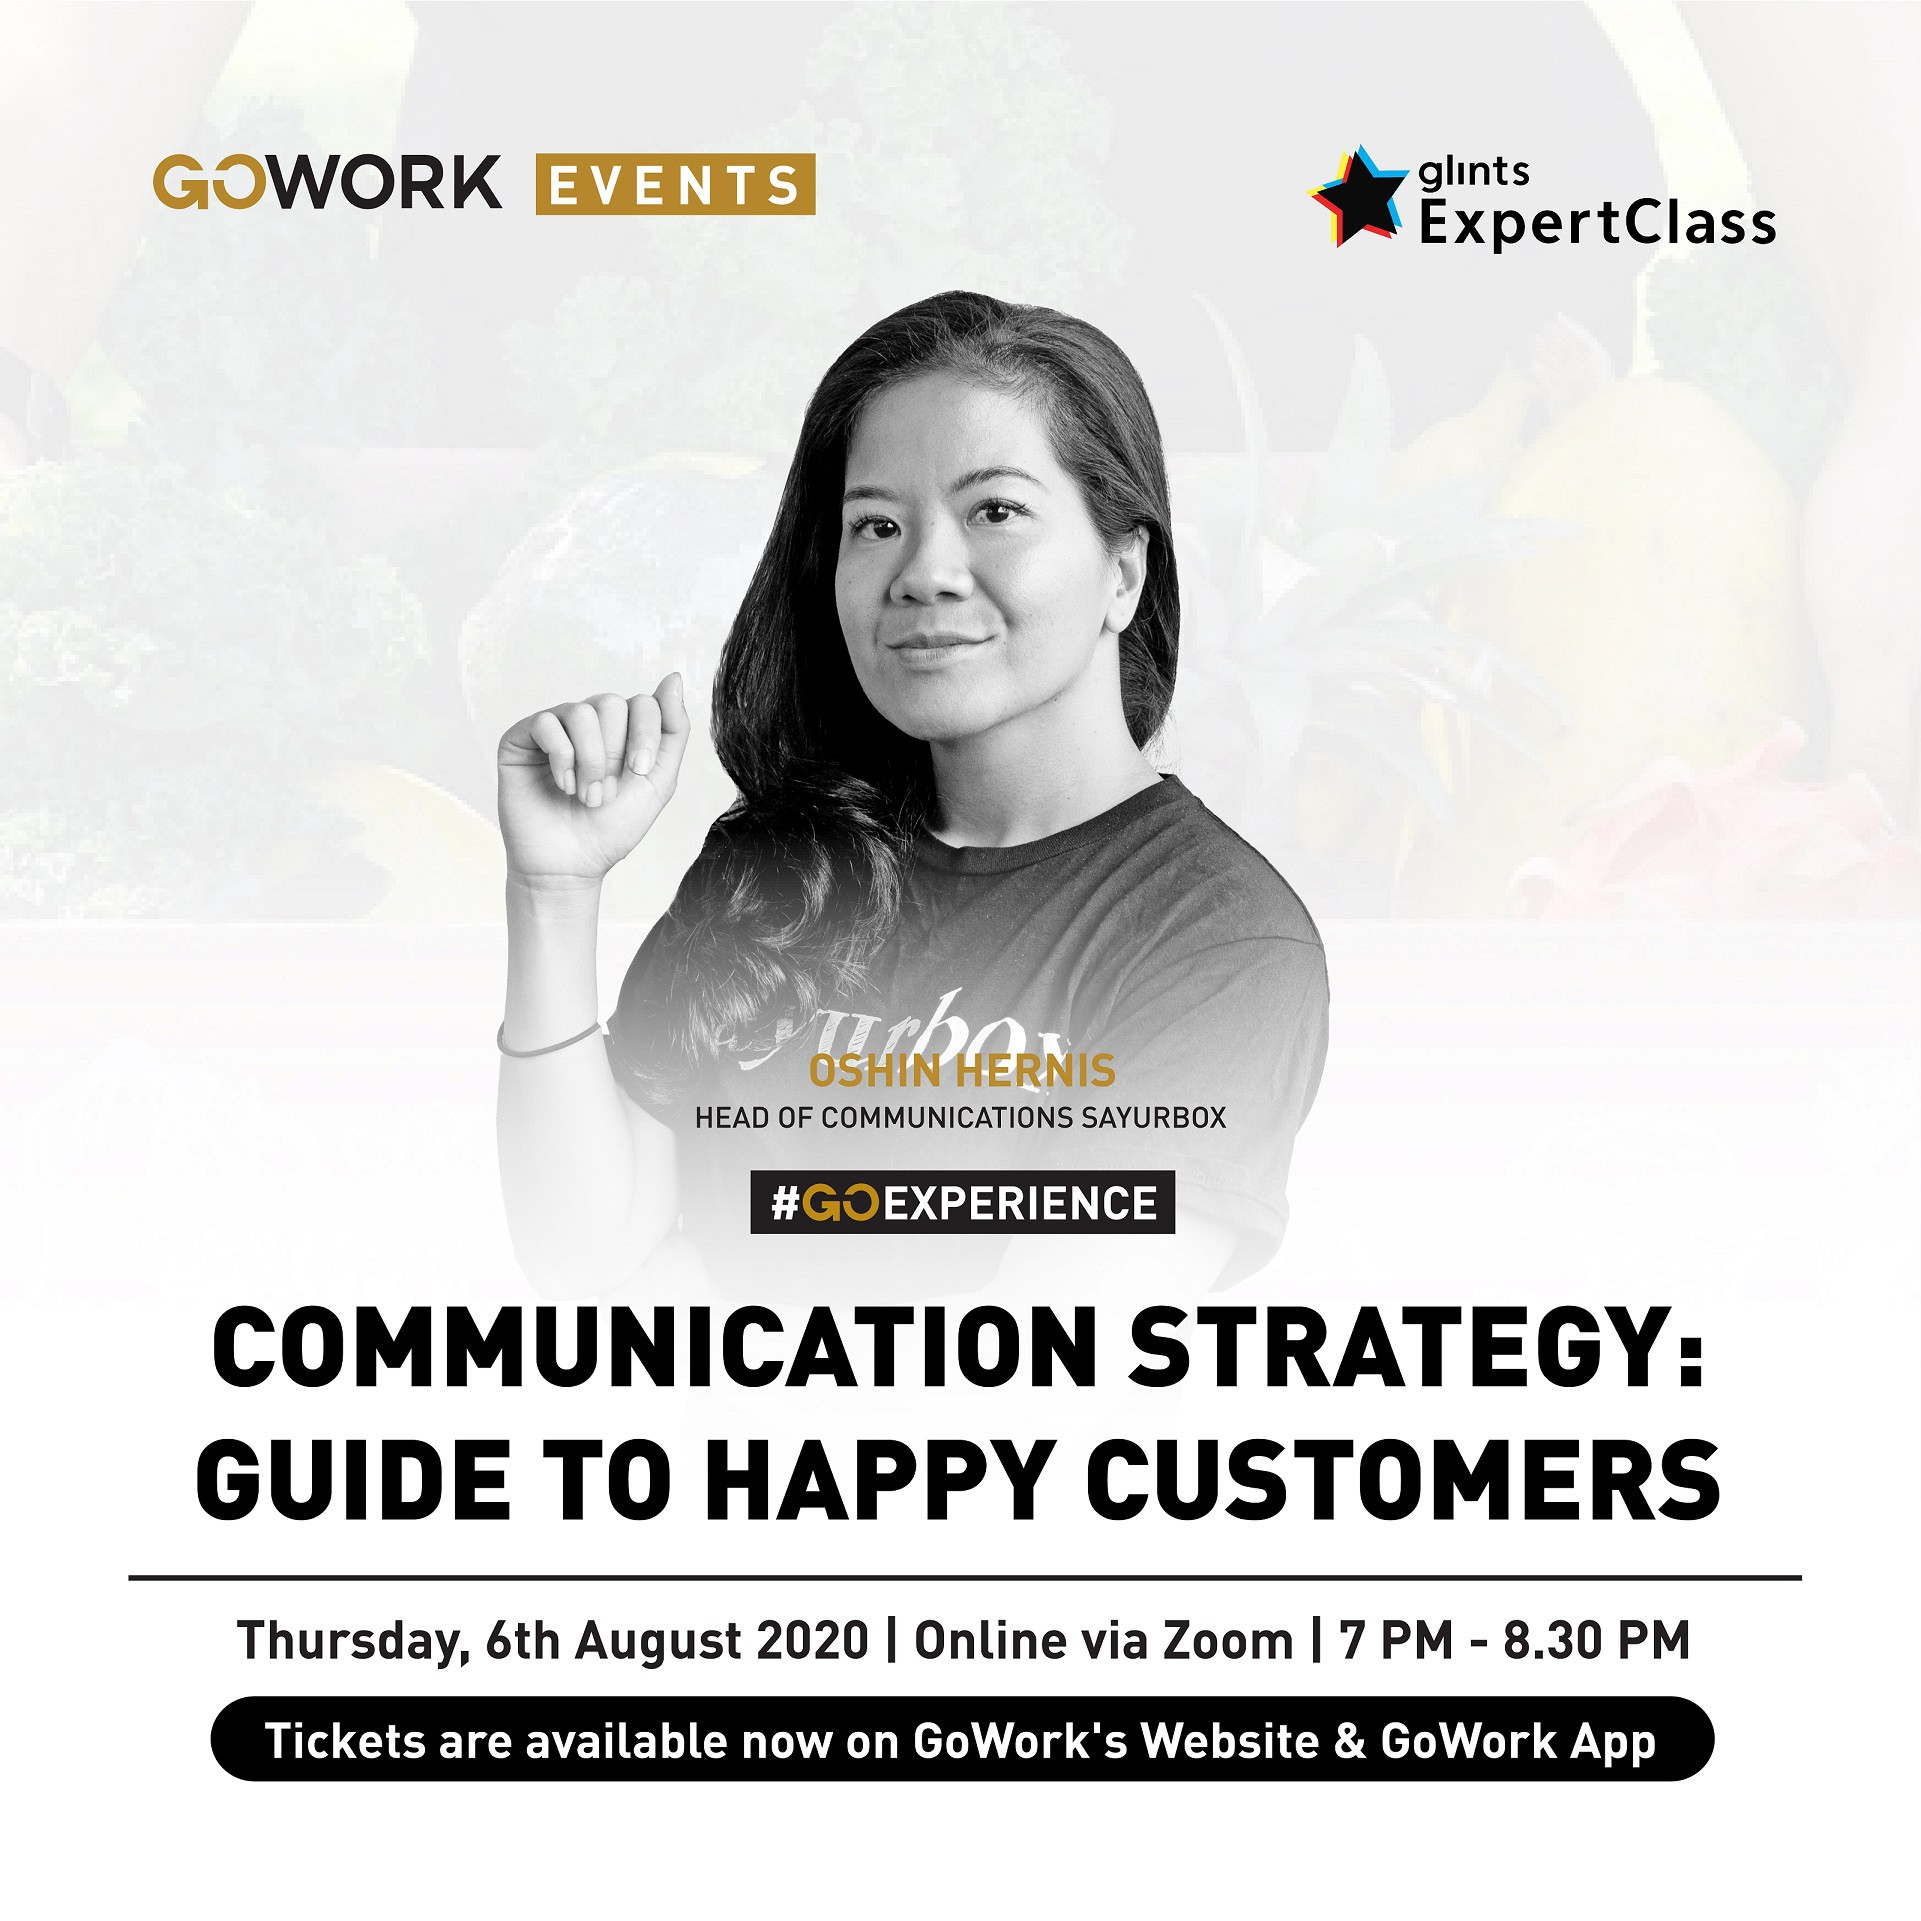 Communication Strategy: Guide to Happy Customers